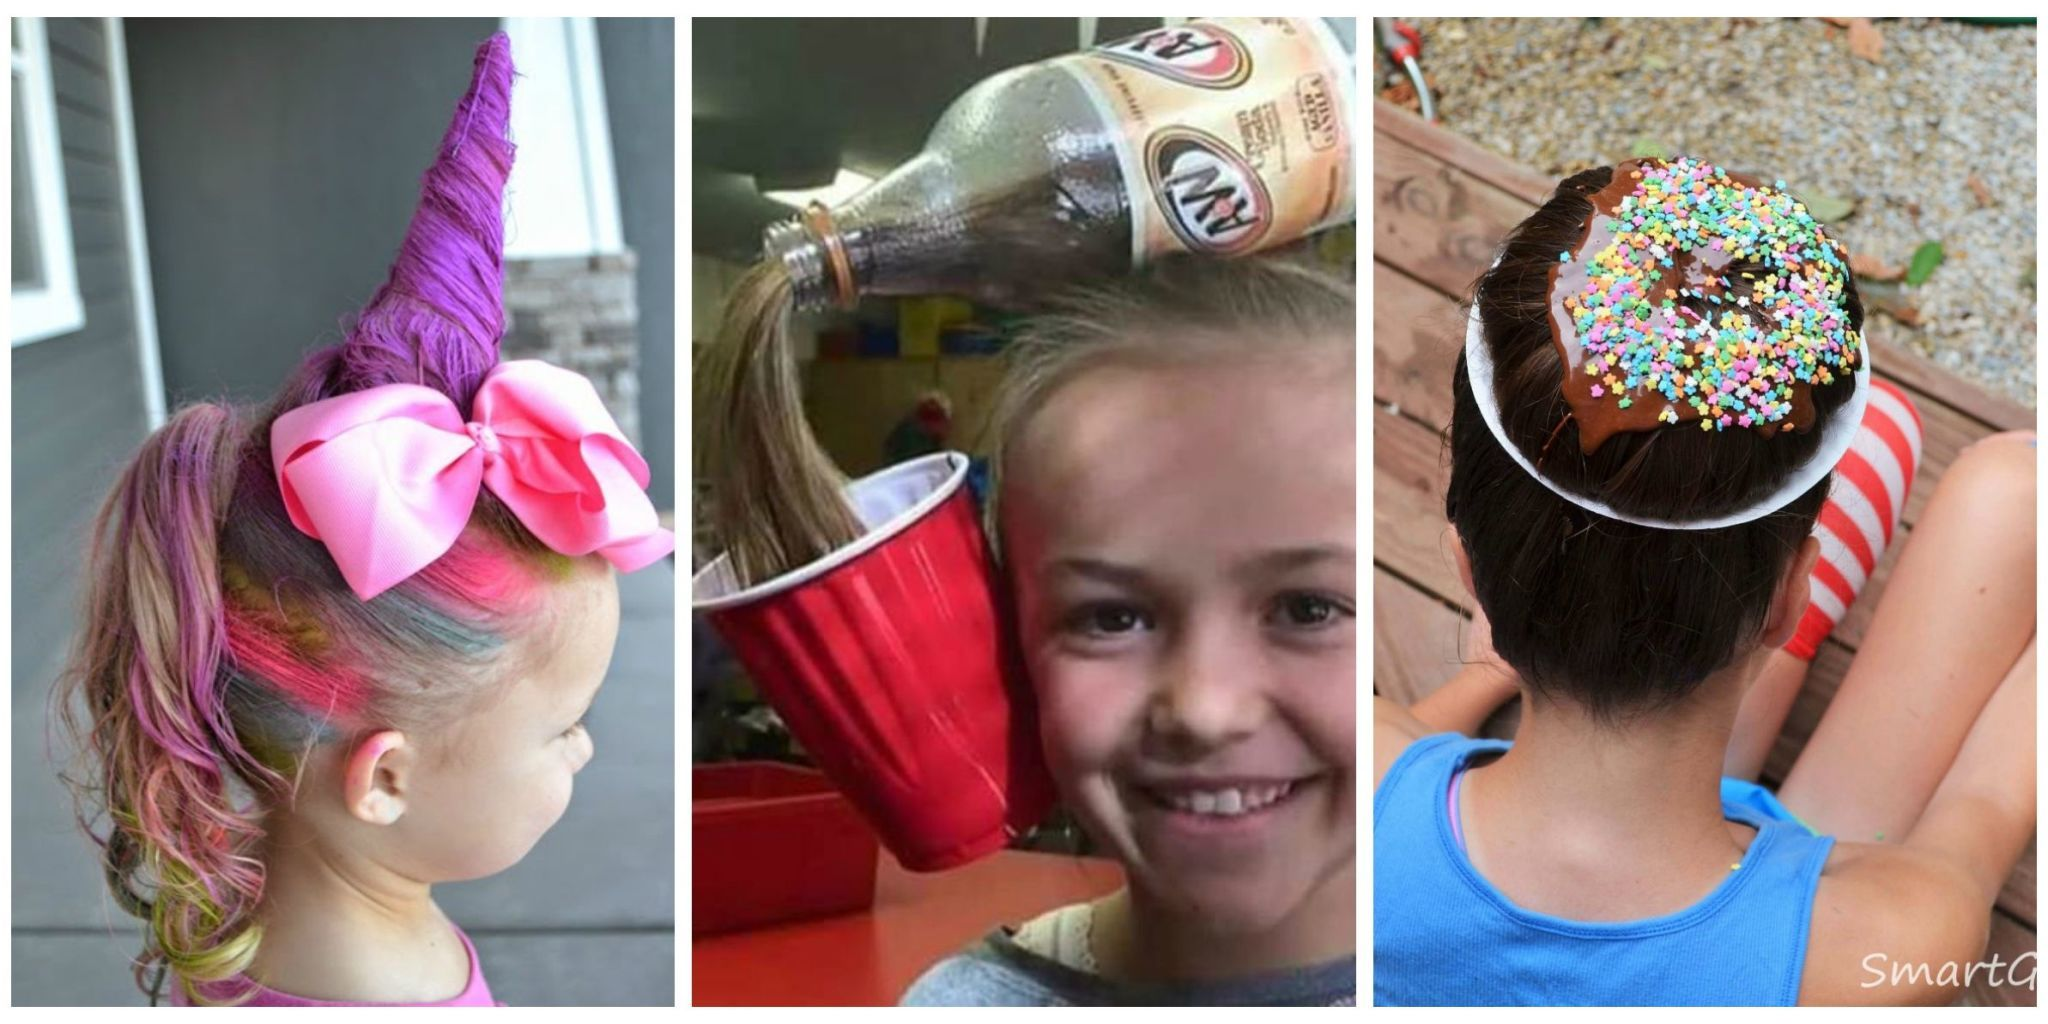 crazy hair day ideas - wacky